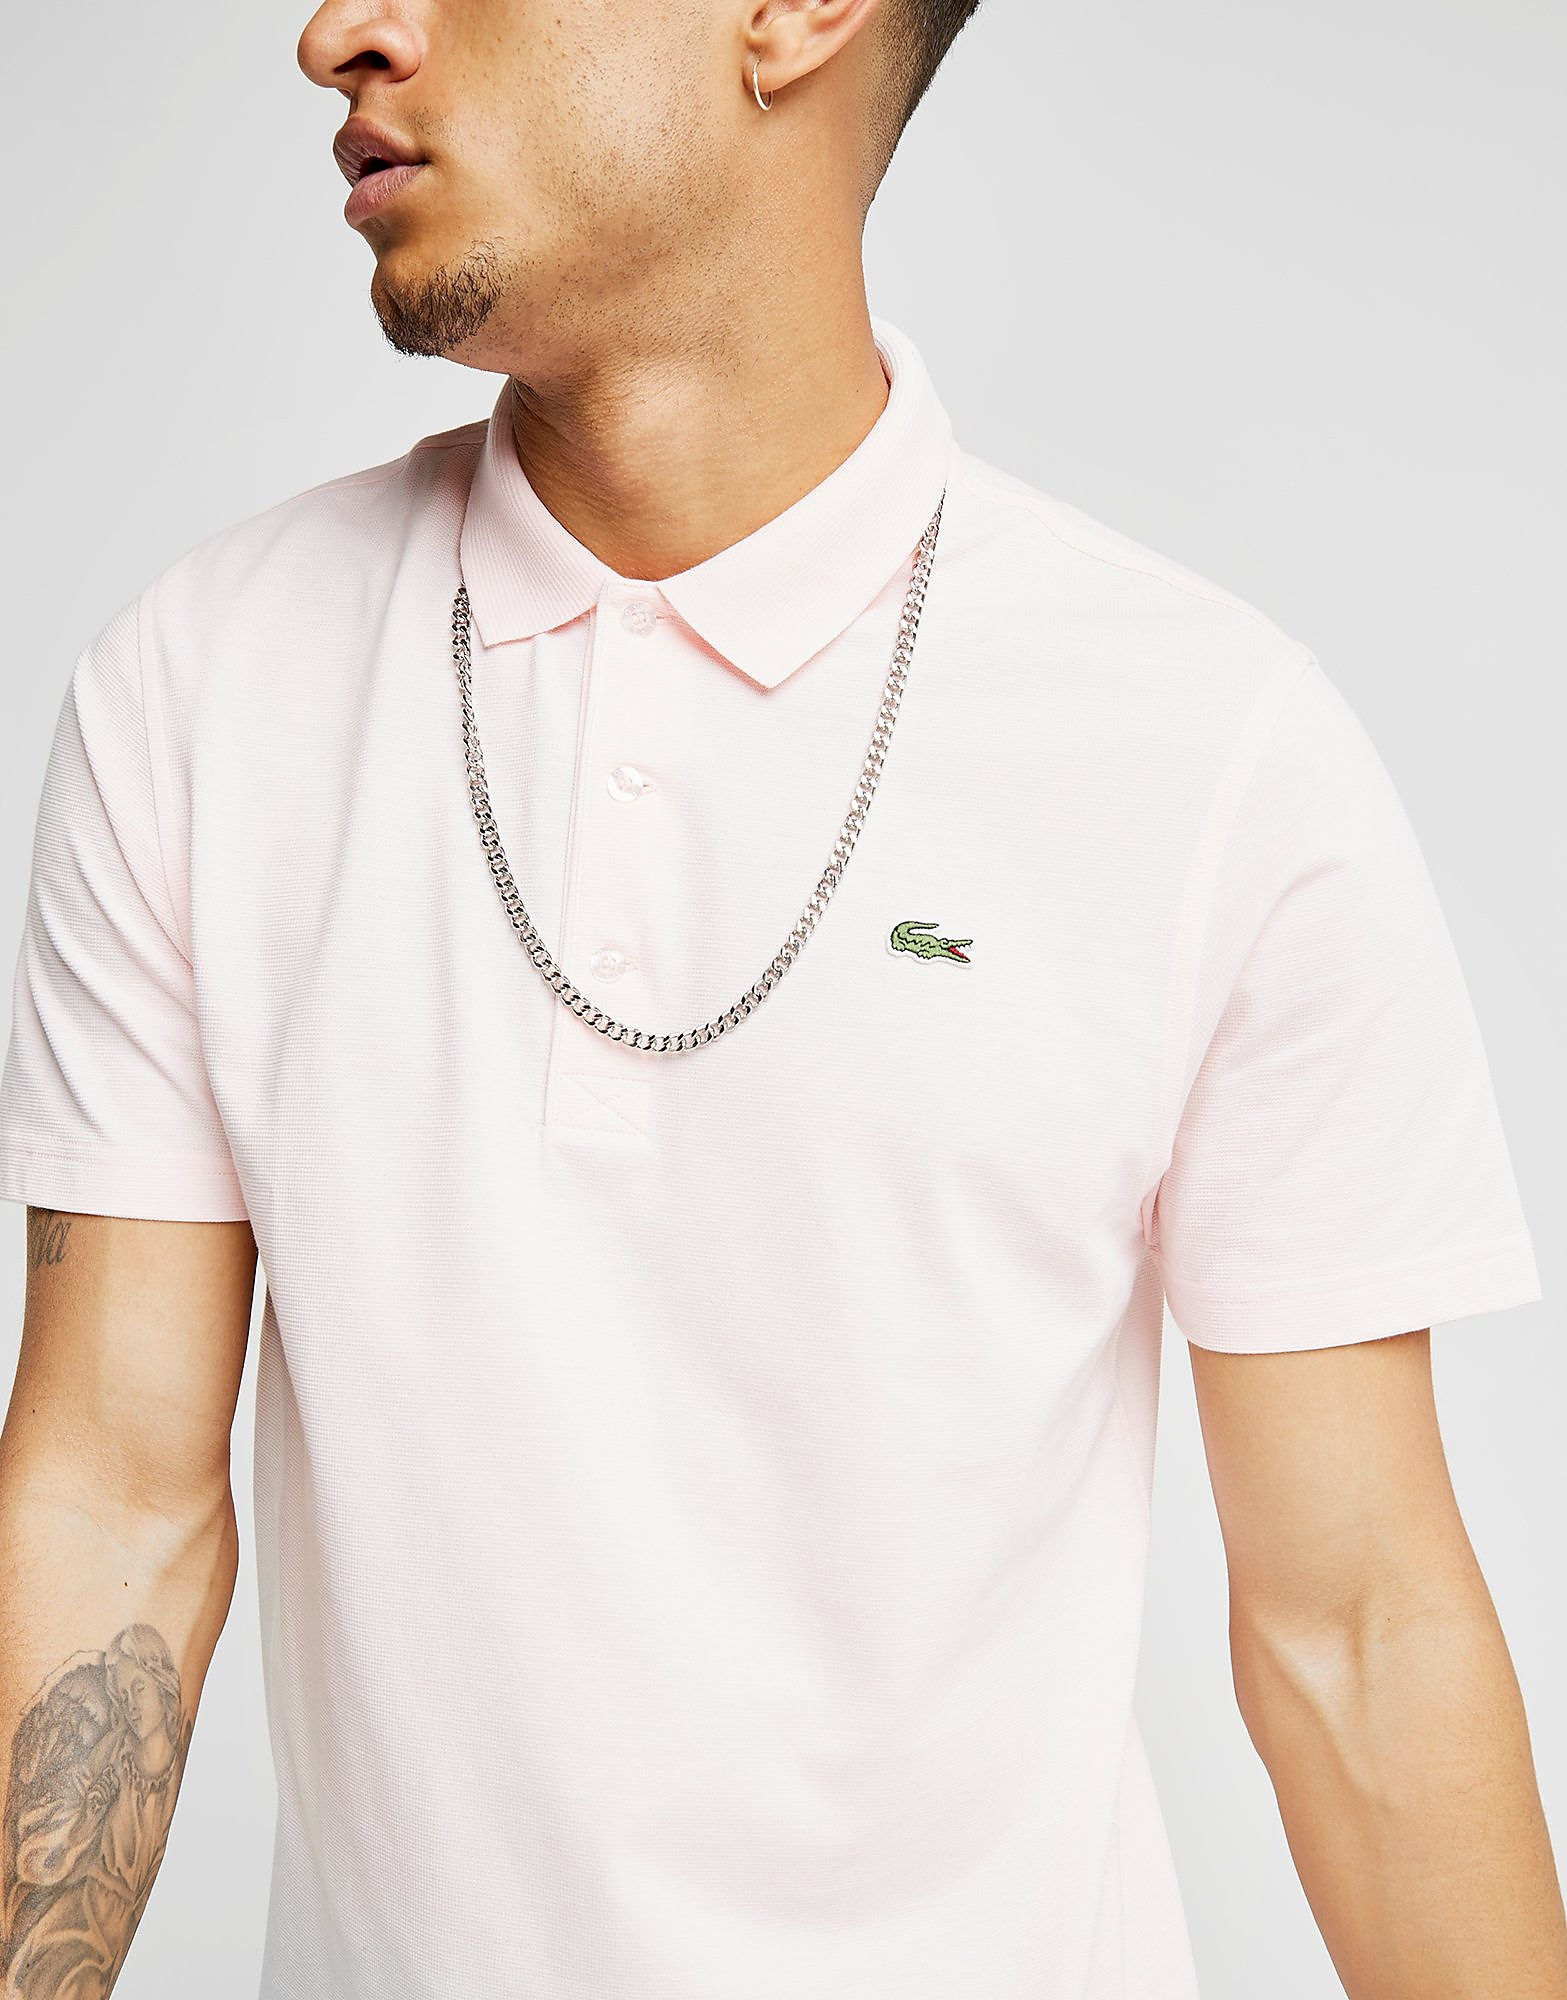 Lacoste polo Alligator